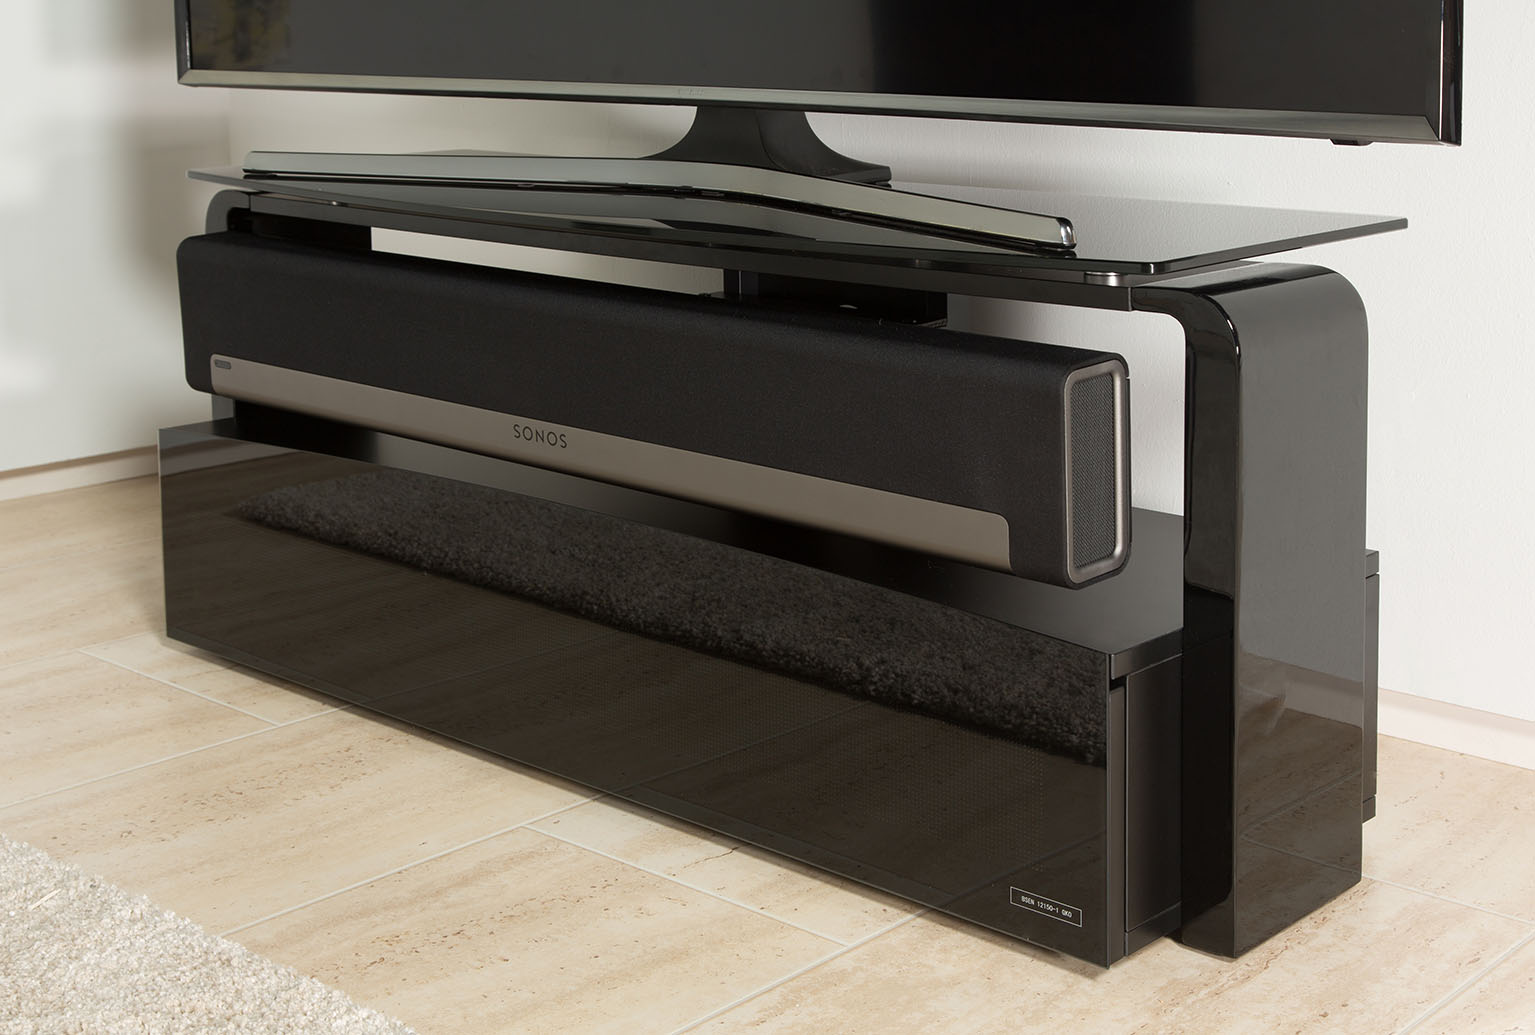 Meuble Tv 55 Pouces France Marketing Meubles Supports Sonos Aps As9001 Sonos Playbar